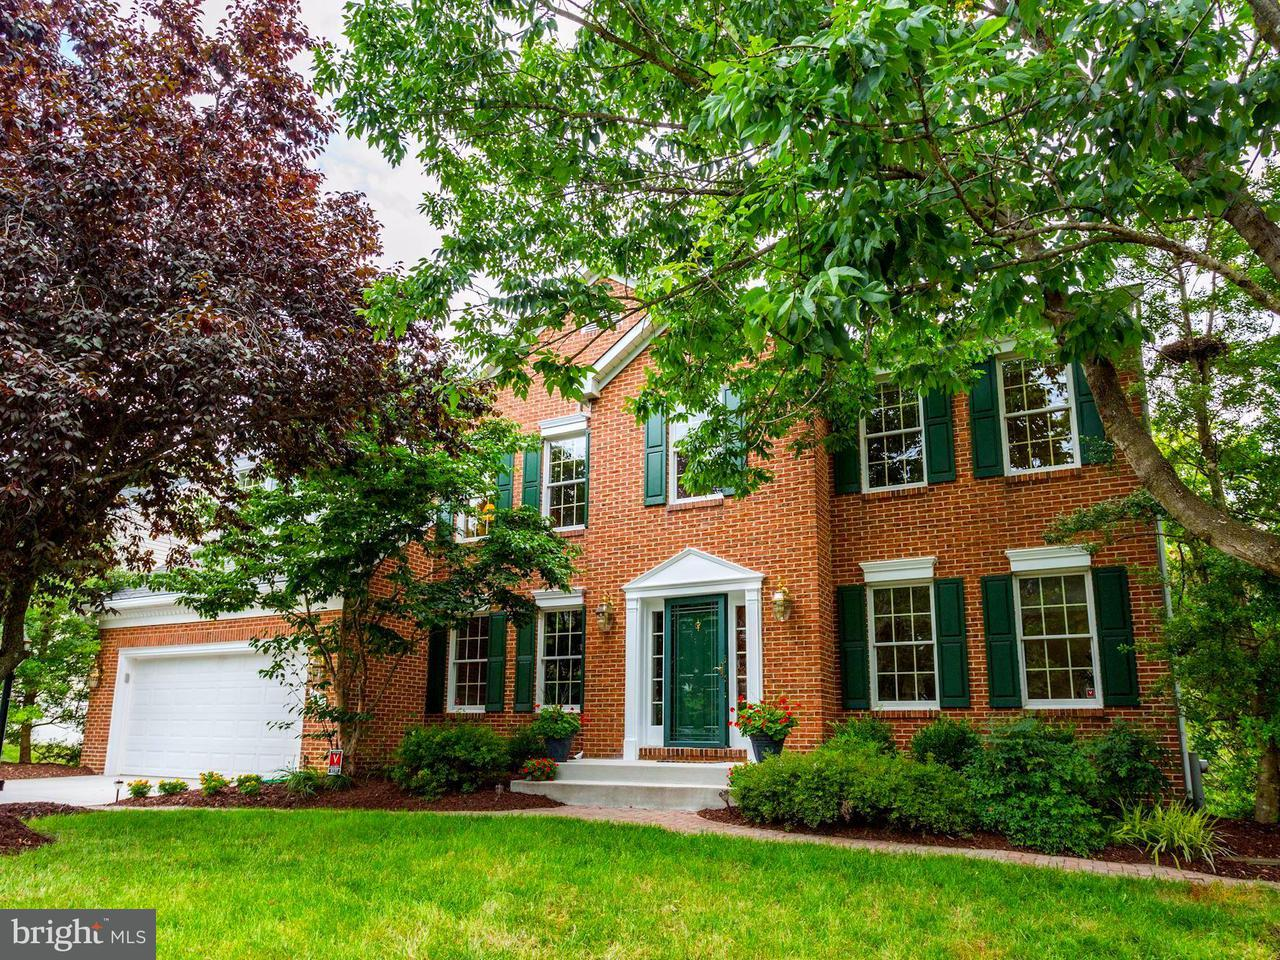 Single Family Home for Sale at 6337 GOLDEN STAR Place 6337 GOLDEN STAR Place Columbia, Maryland 21044 United States